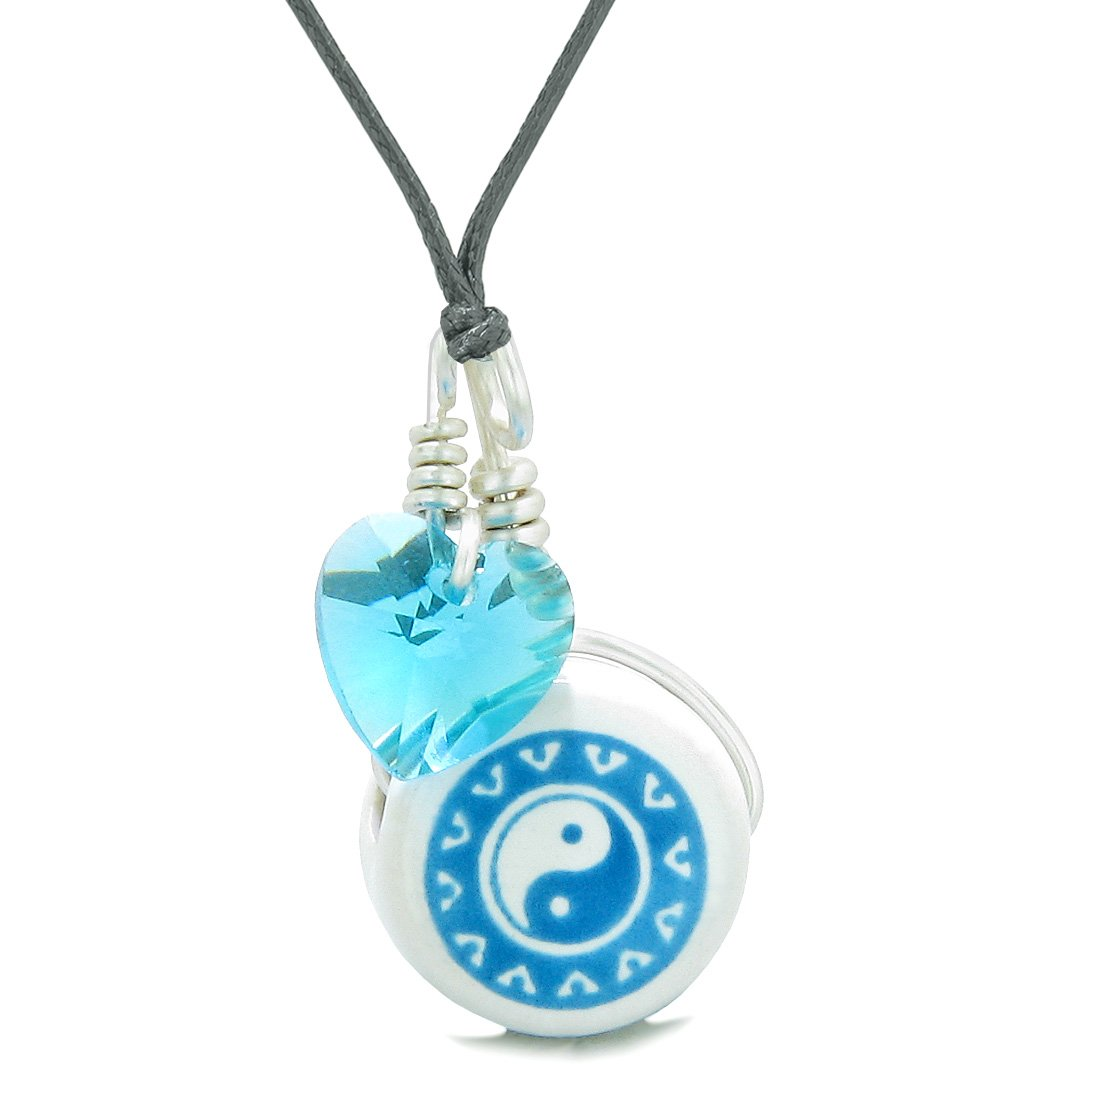 Handcrafted Cute Ceramic Lucky Charm Aqua Yin Yang Blue Heart Balance Amulet Pendant Adjustable Necklace